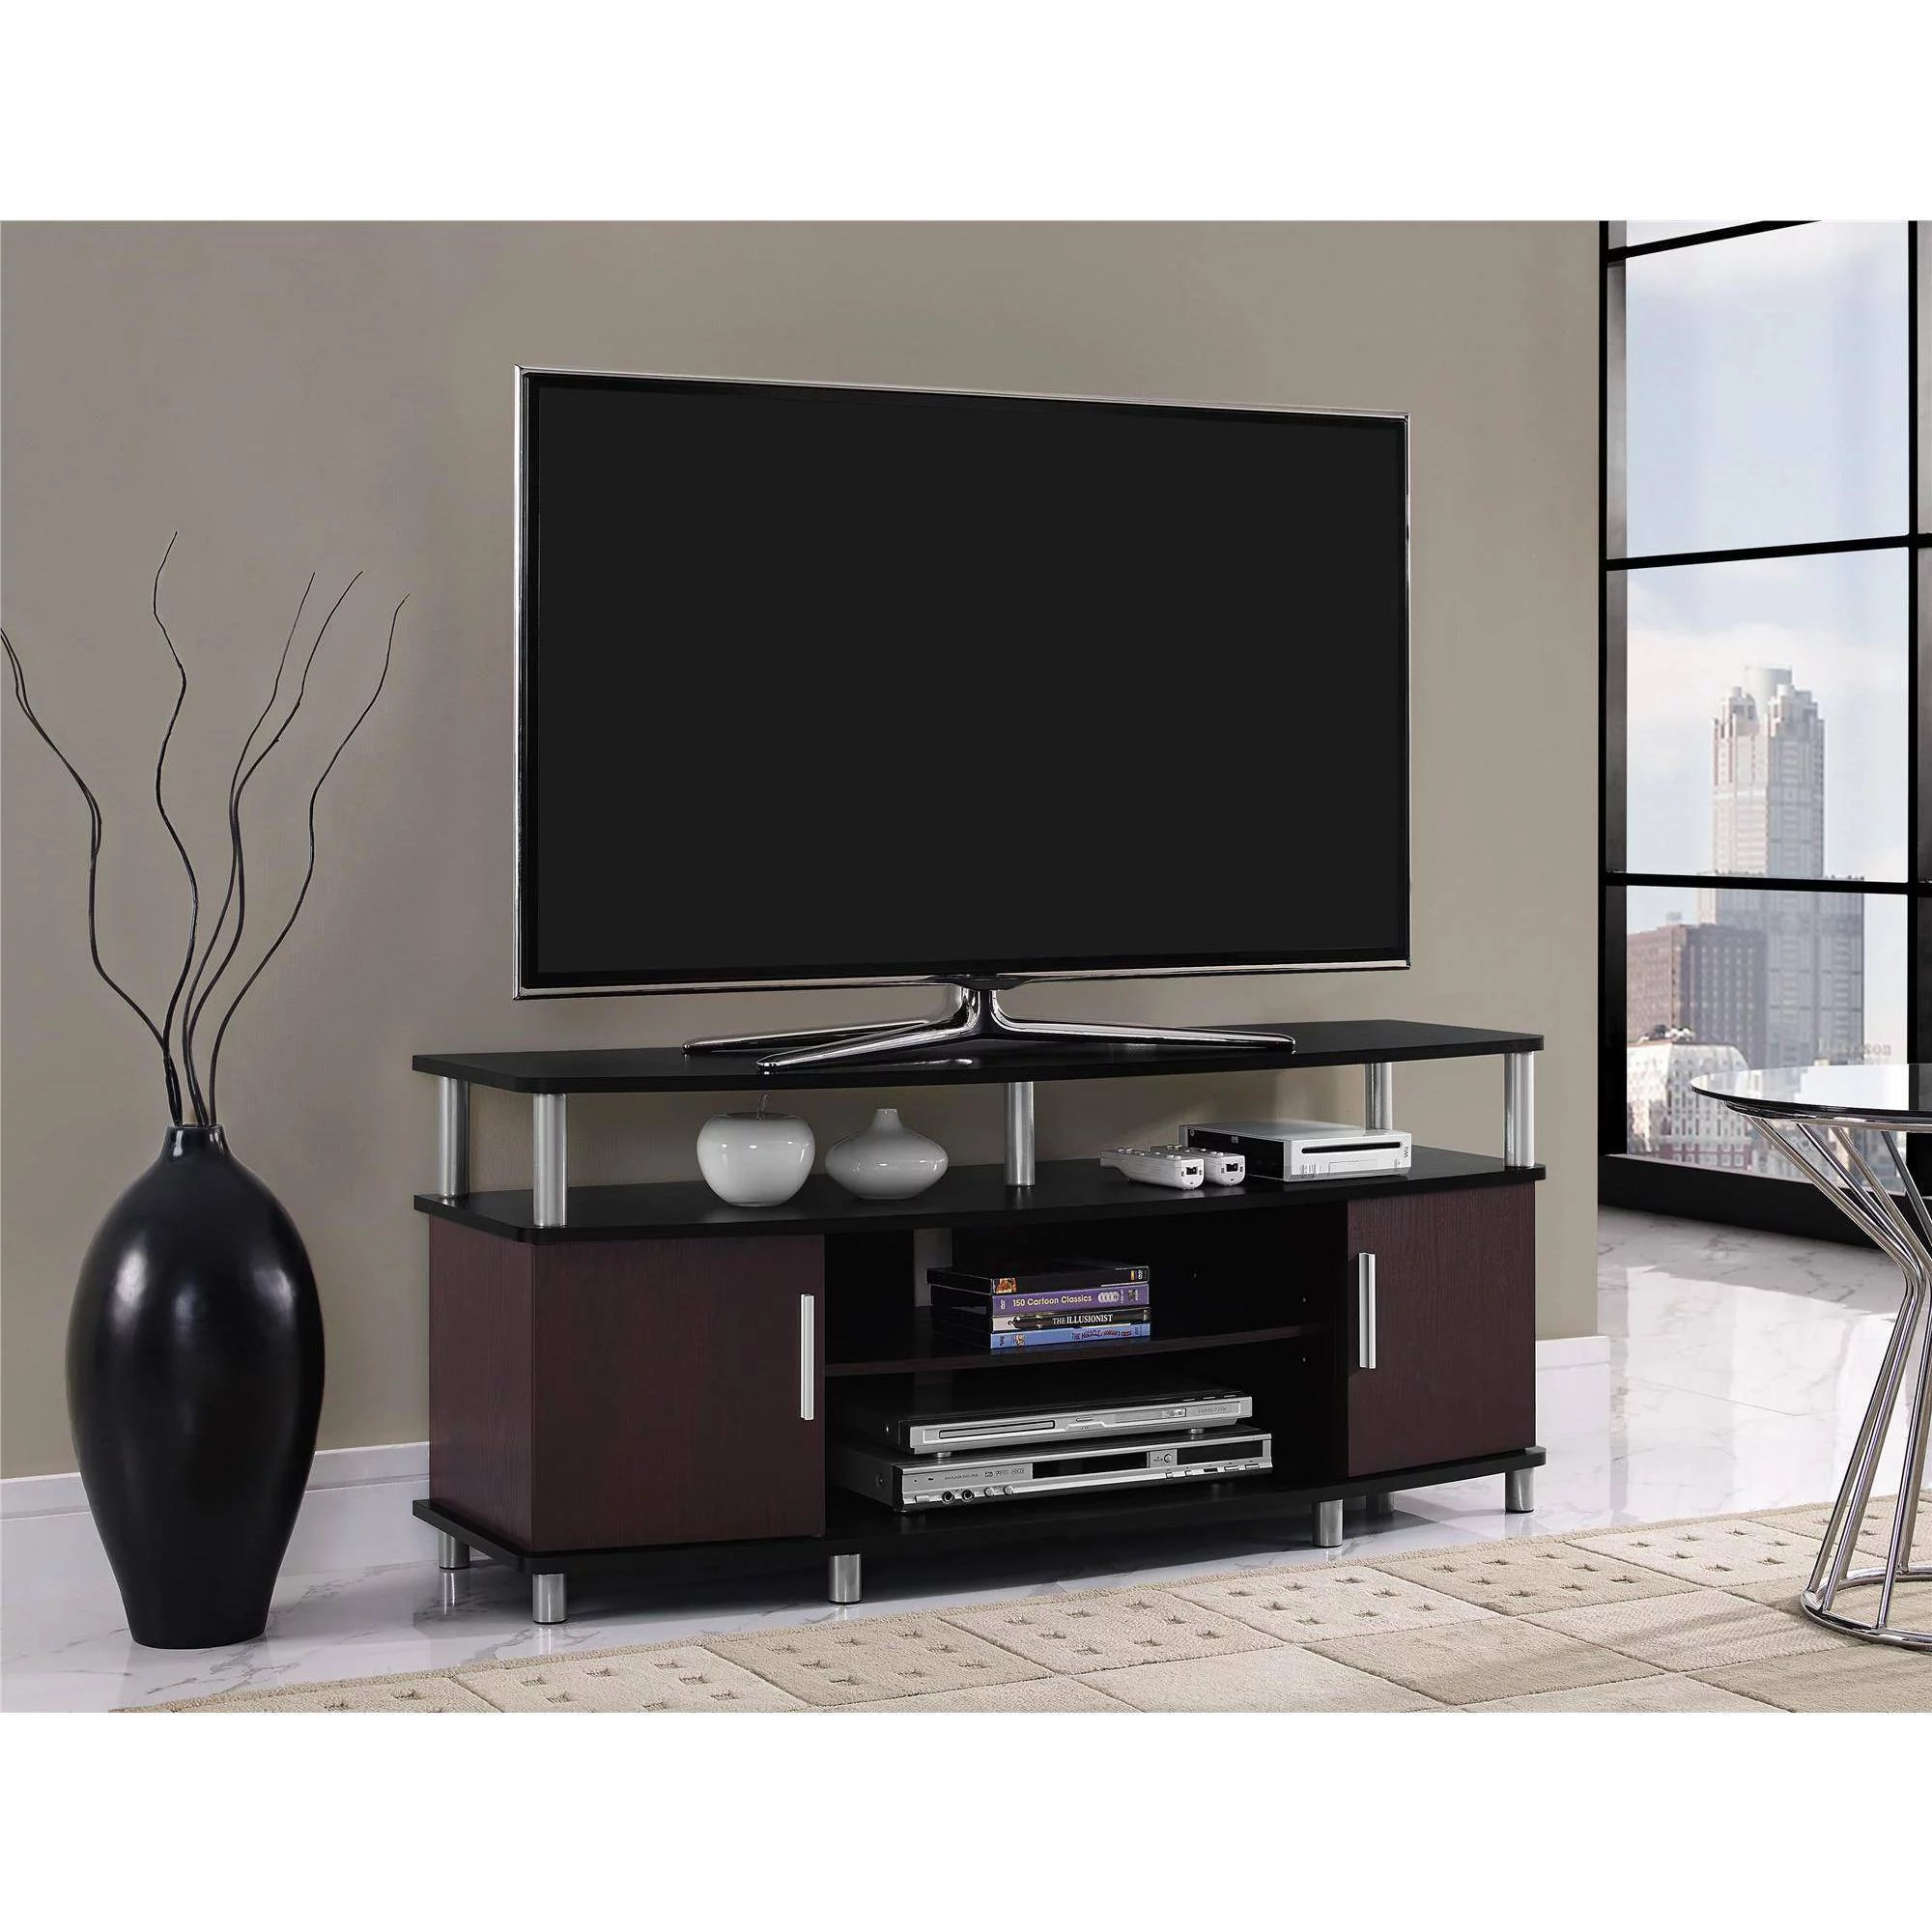 Design Tv Rack Cool Tv Rack With Tv Rack With Design Tv Rack Carson Tv Stand For Tvs Up To 50